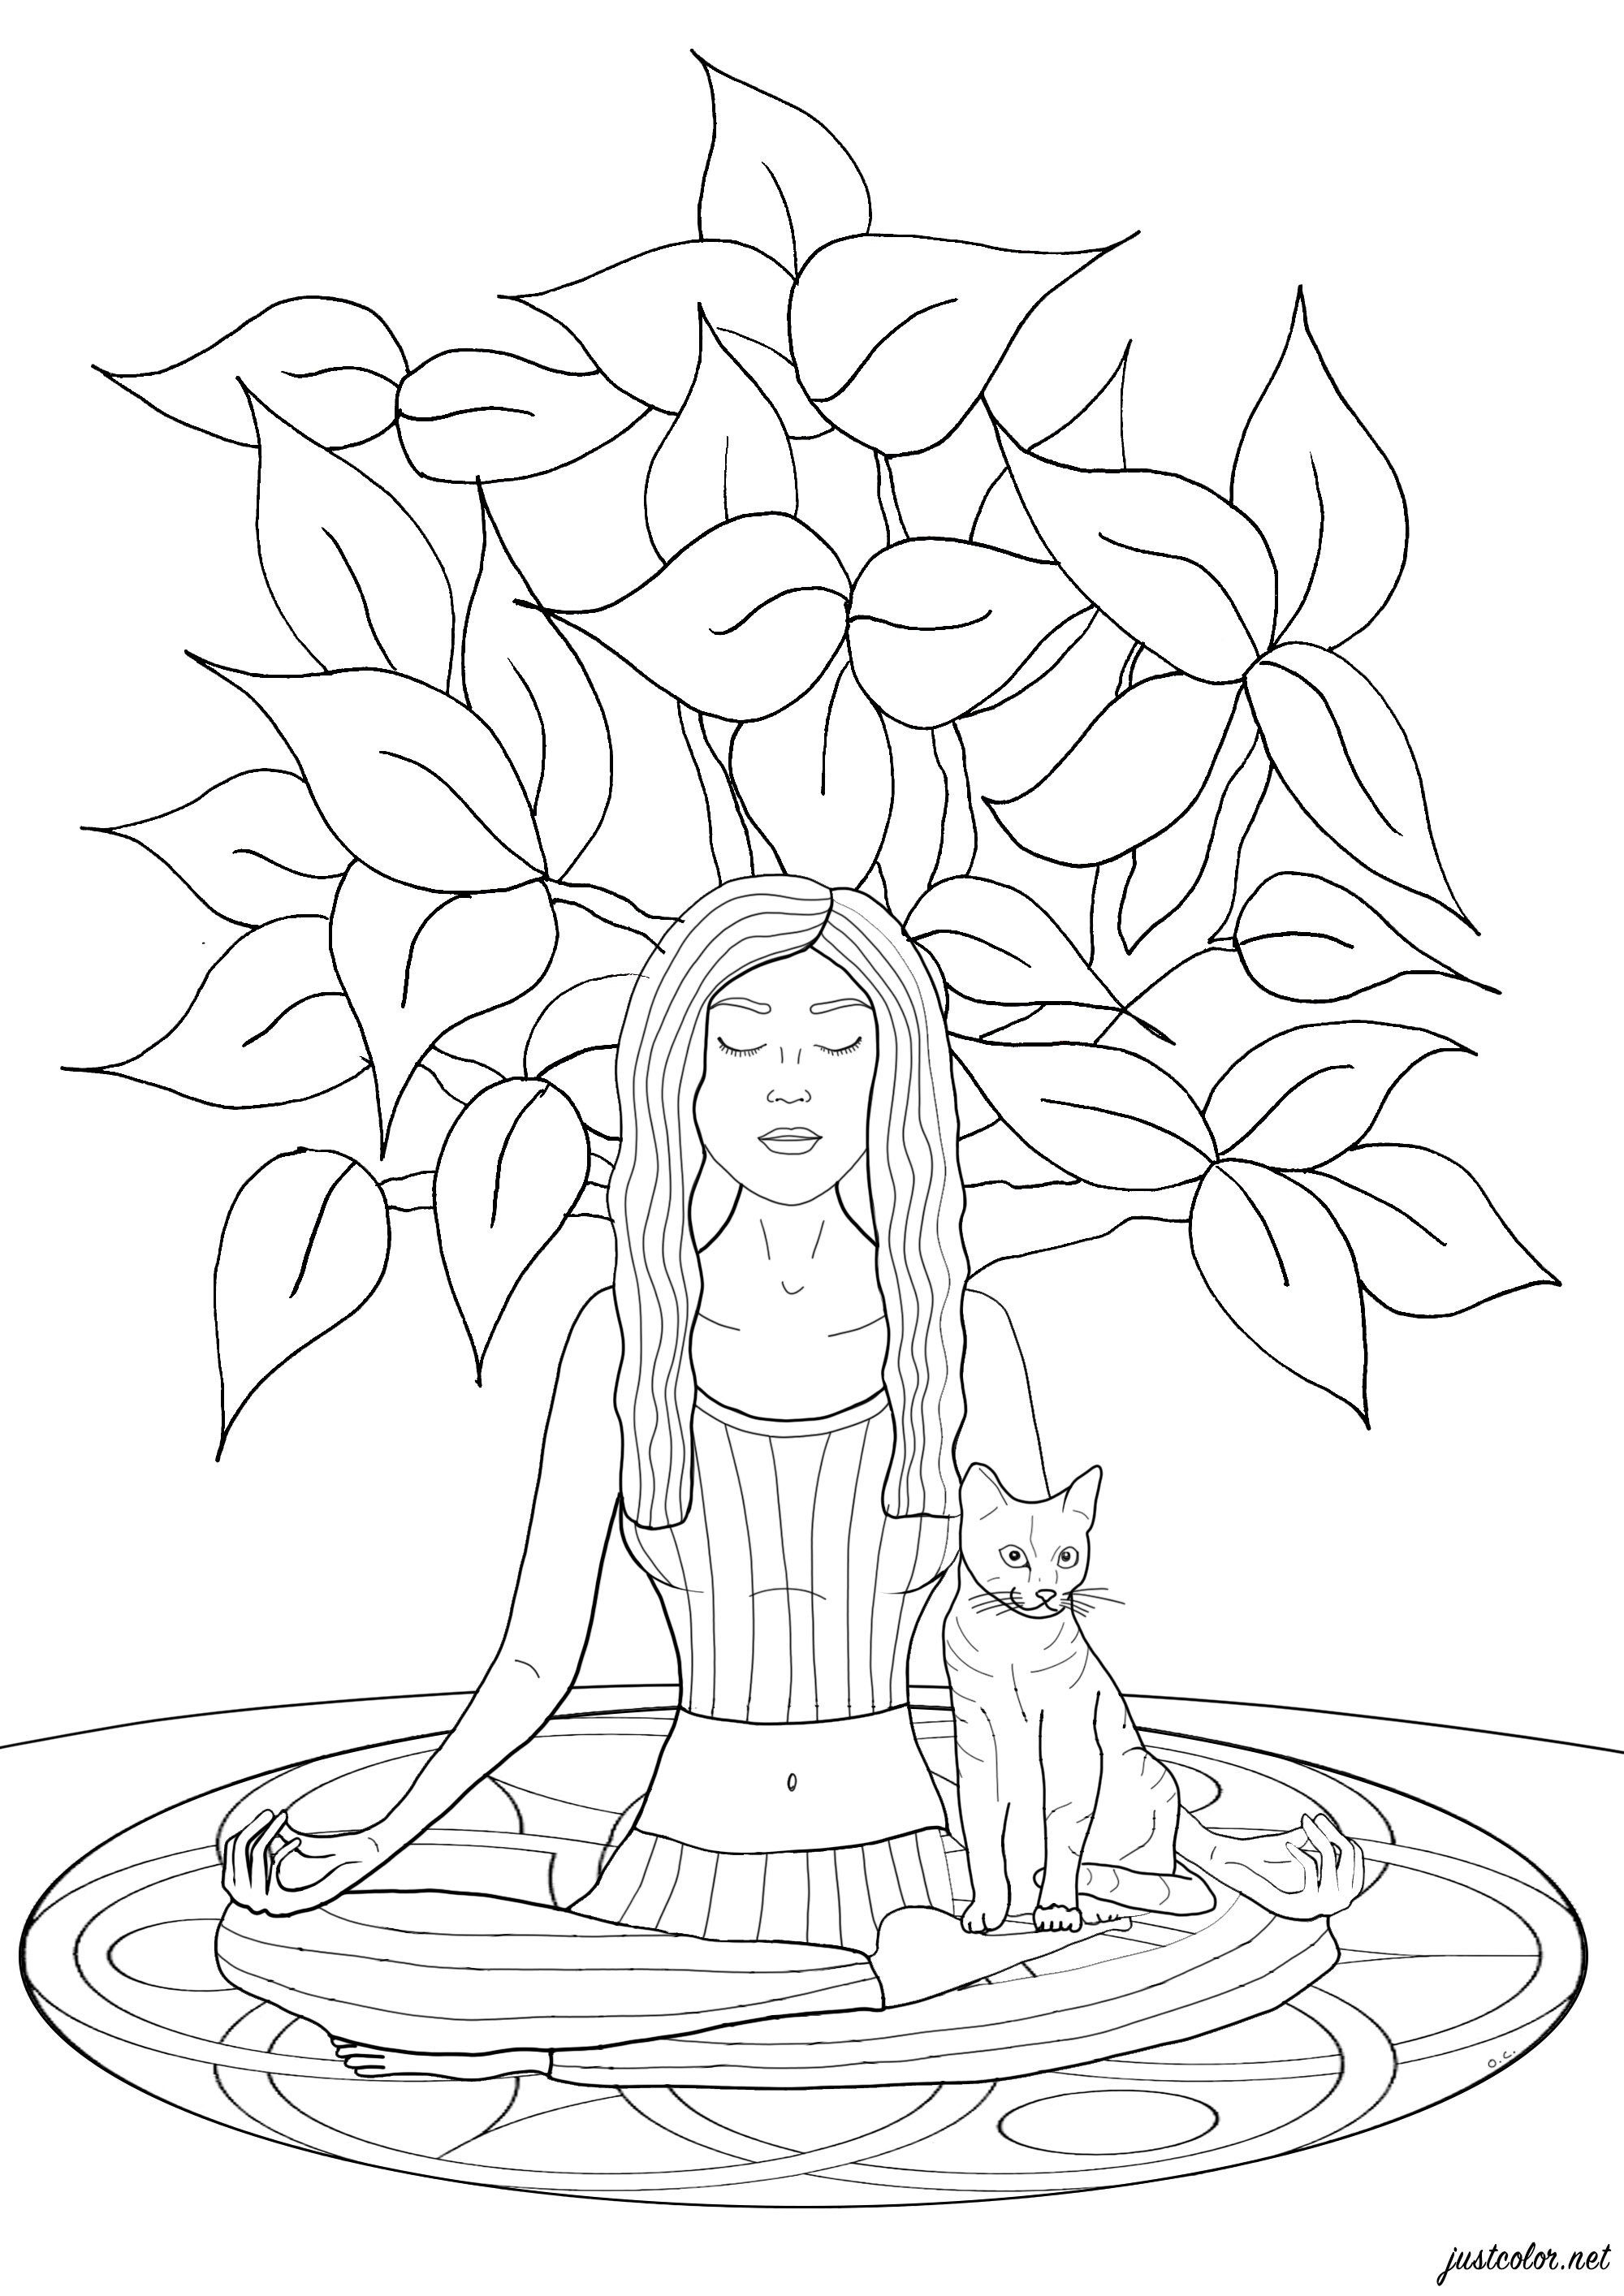 Woman practicing yoga with her cat, a tree grows behind her